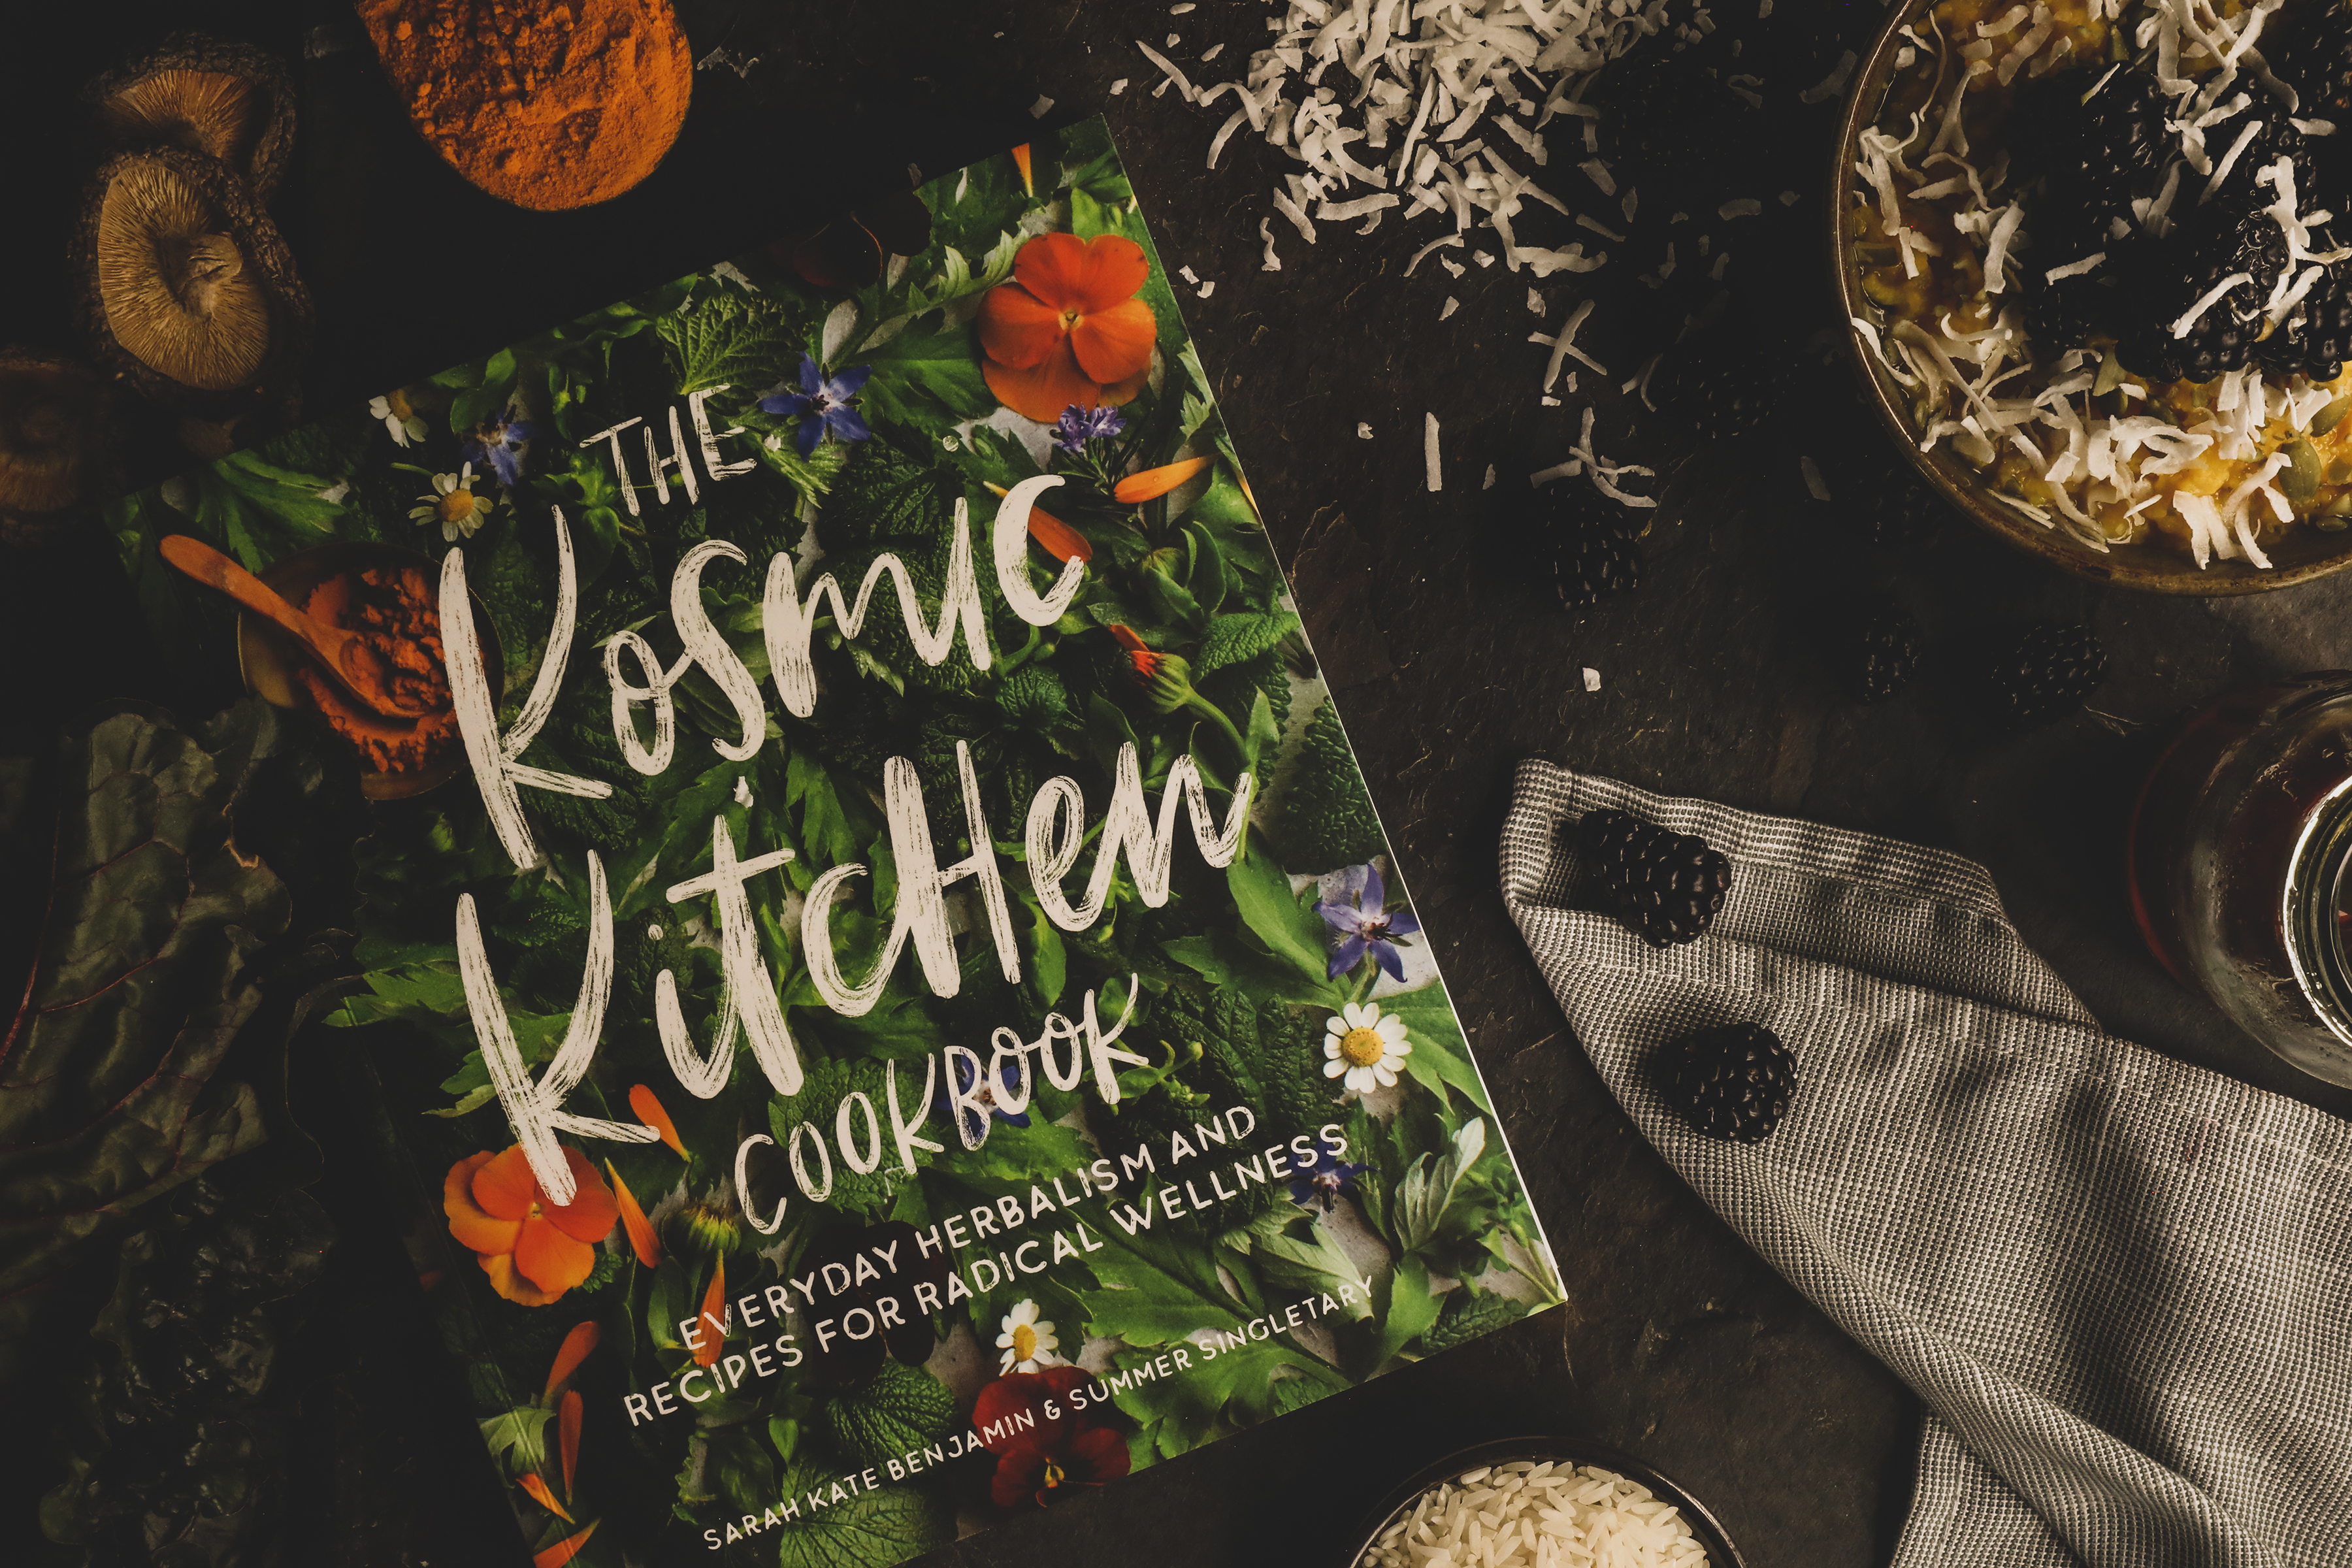 Kosmic Kitchen book surrounded by colorful ingredients.